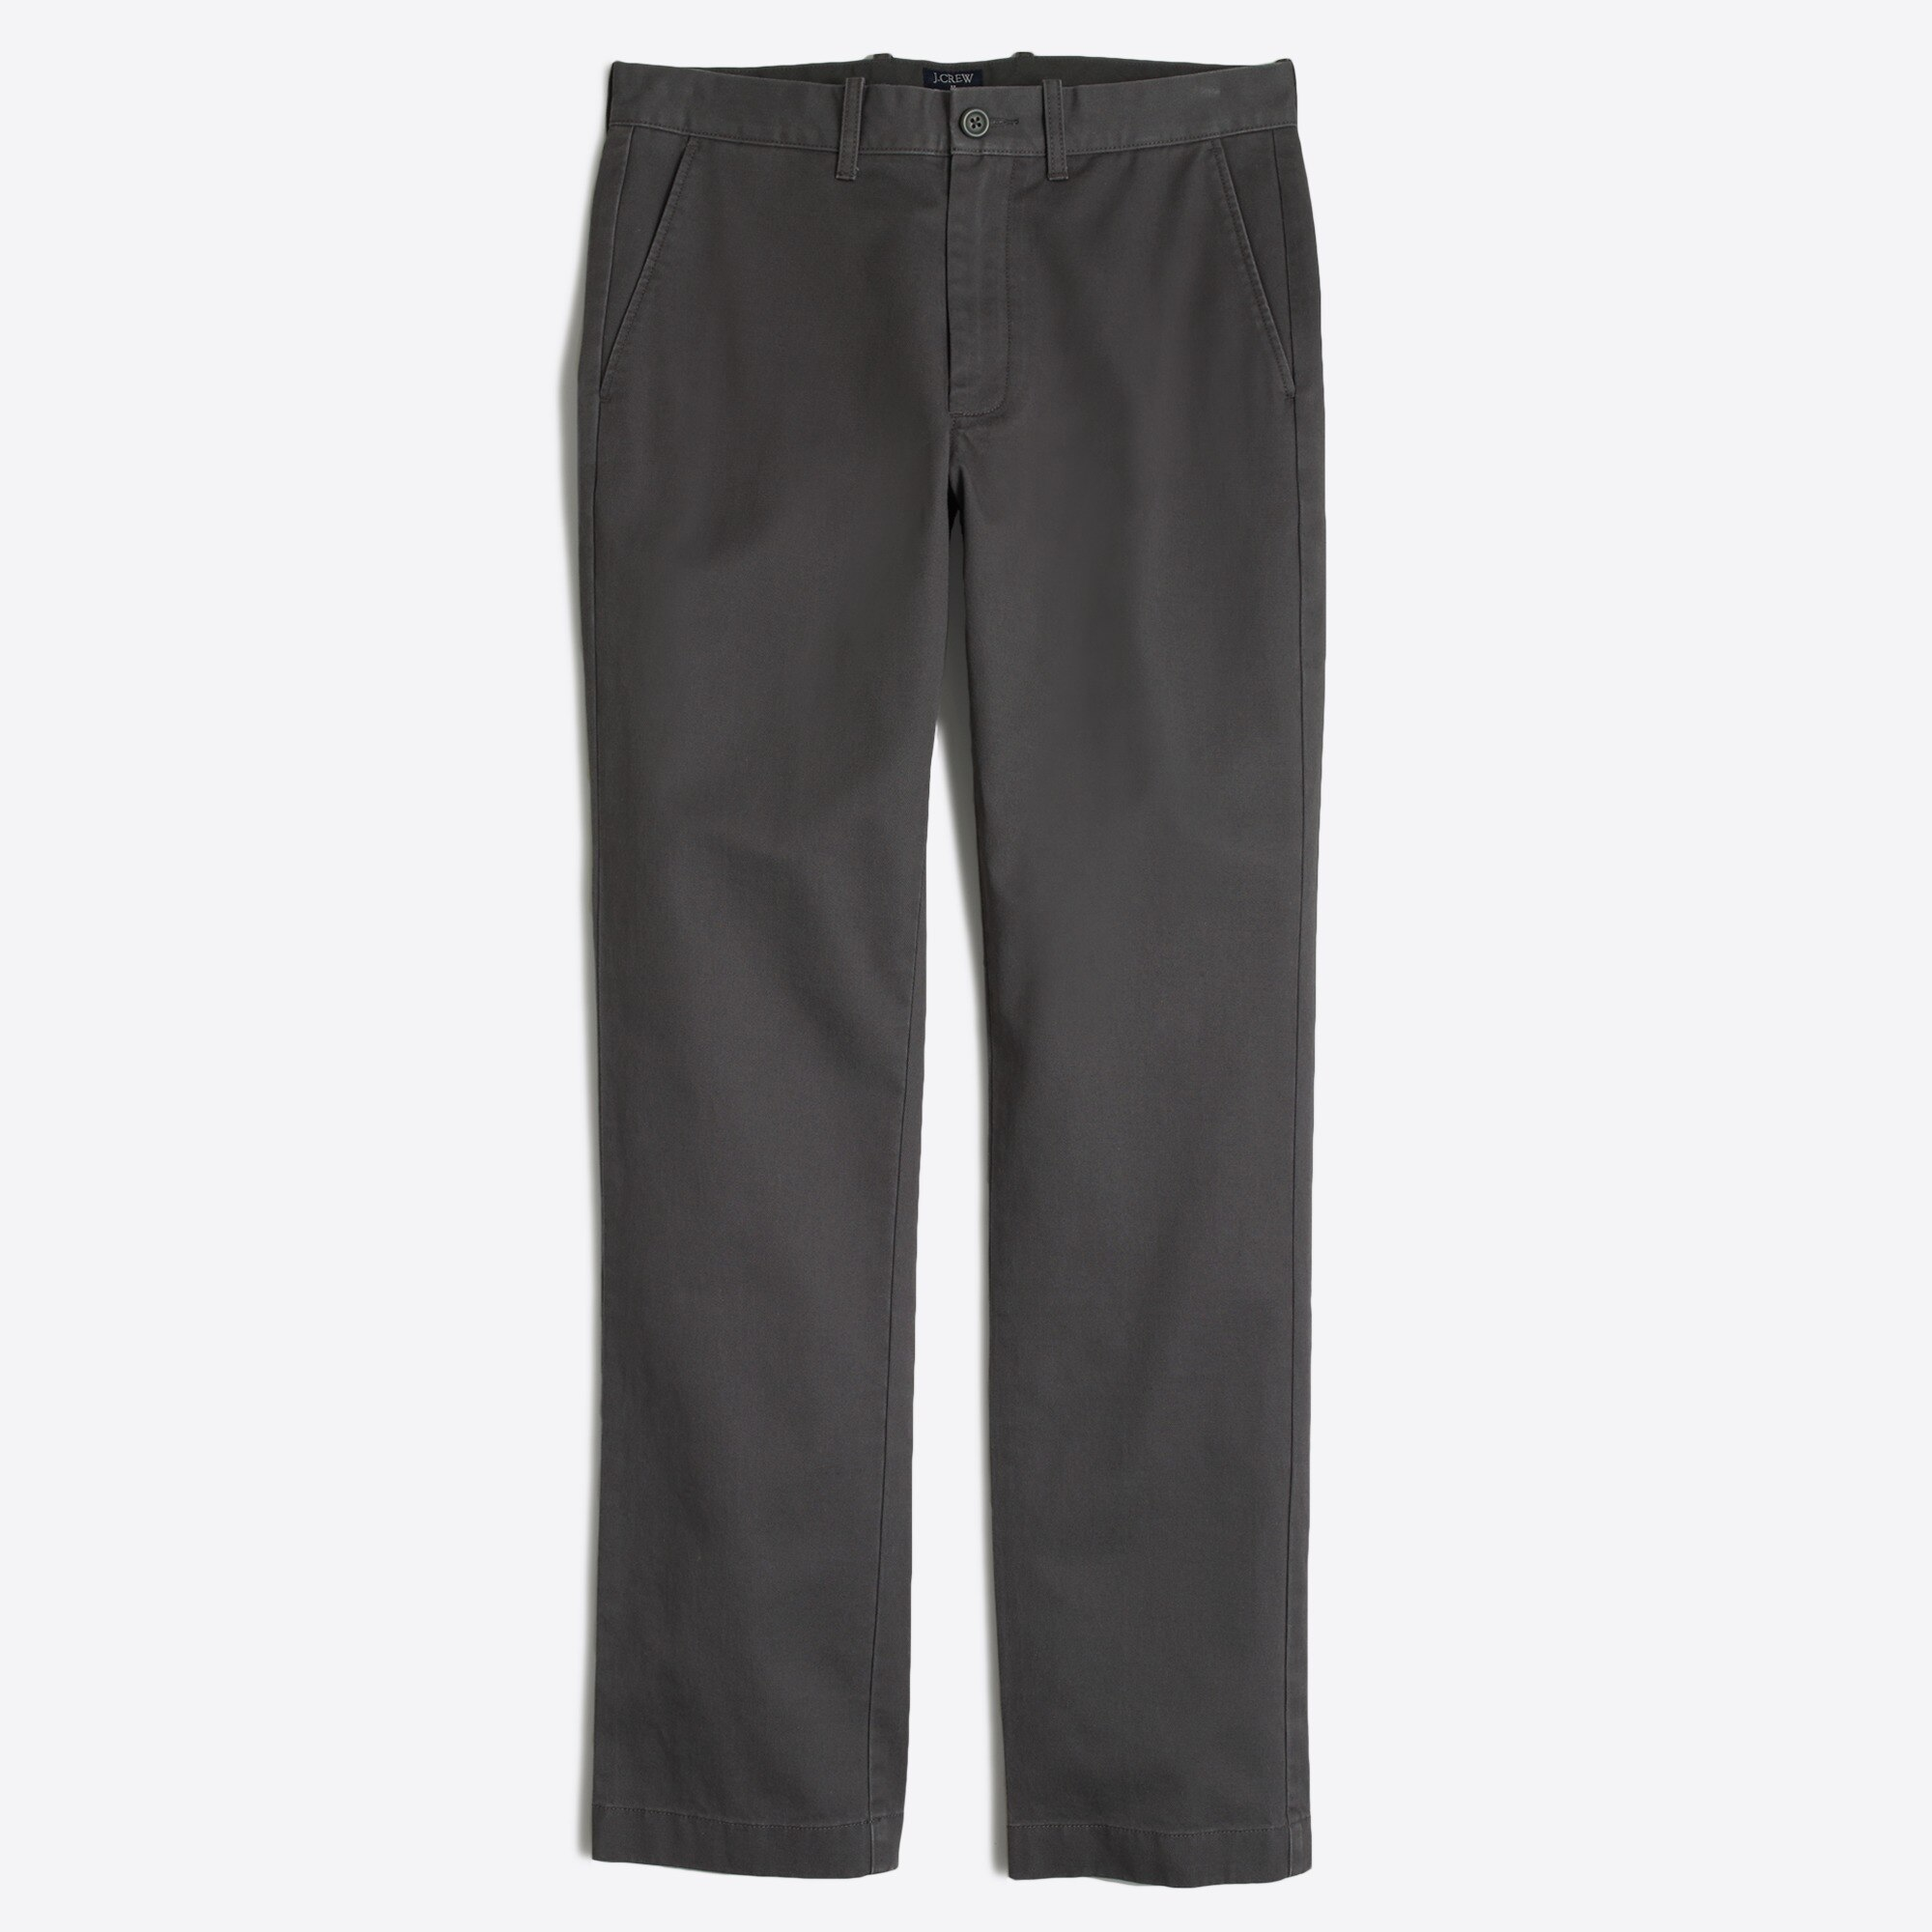 Sutton straight-fit broken-in chino factorymen pants c